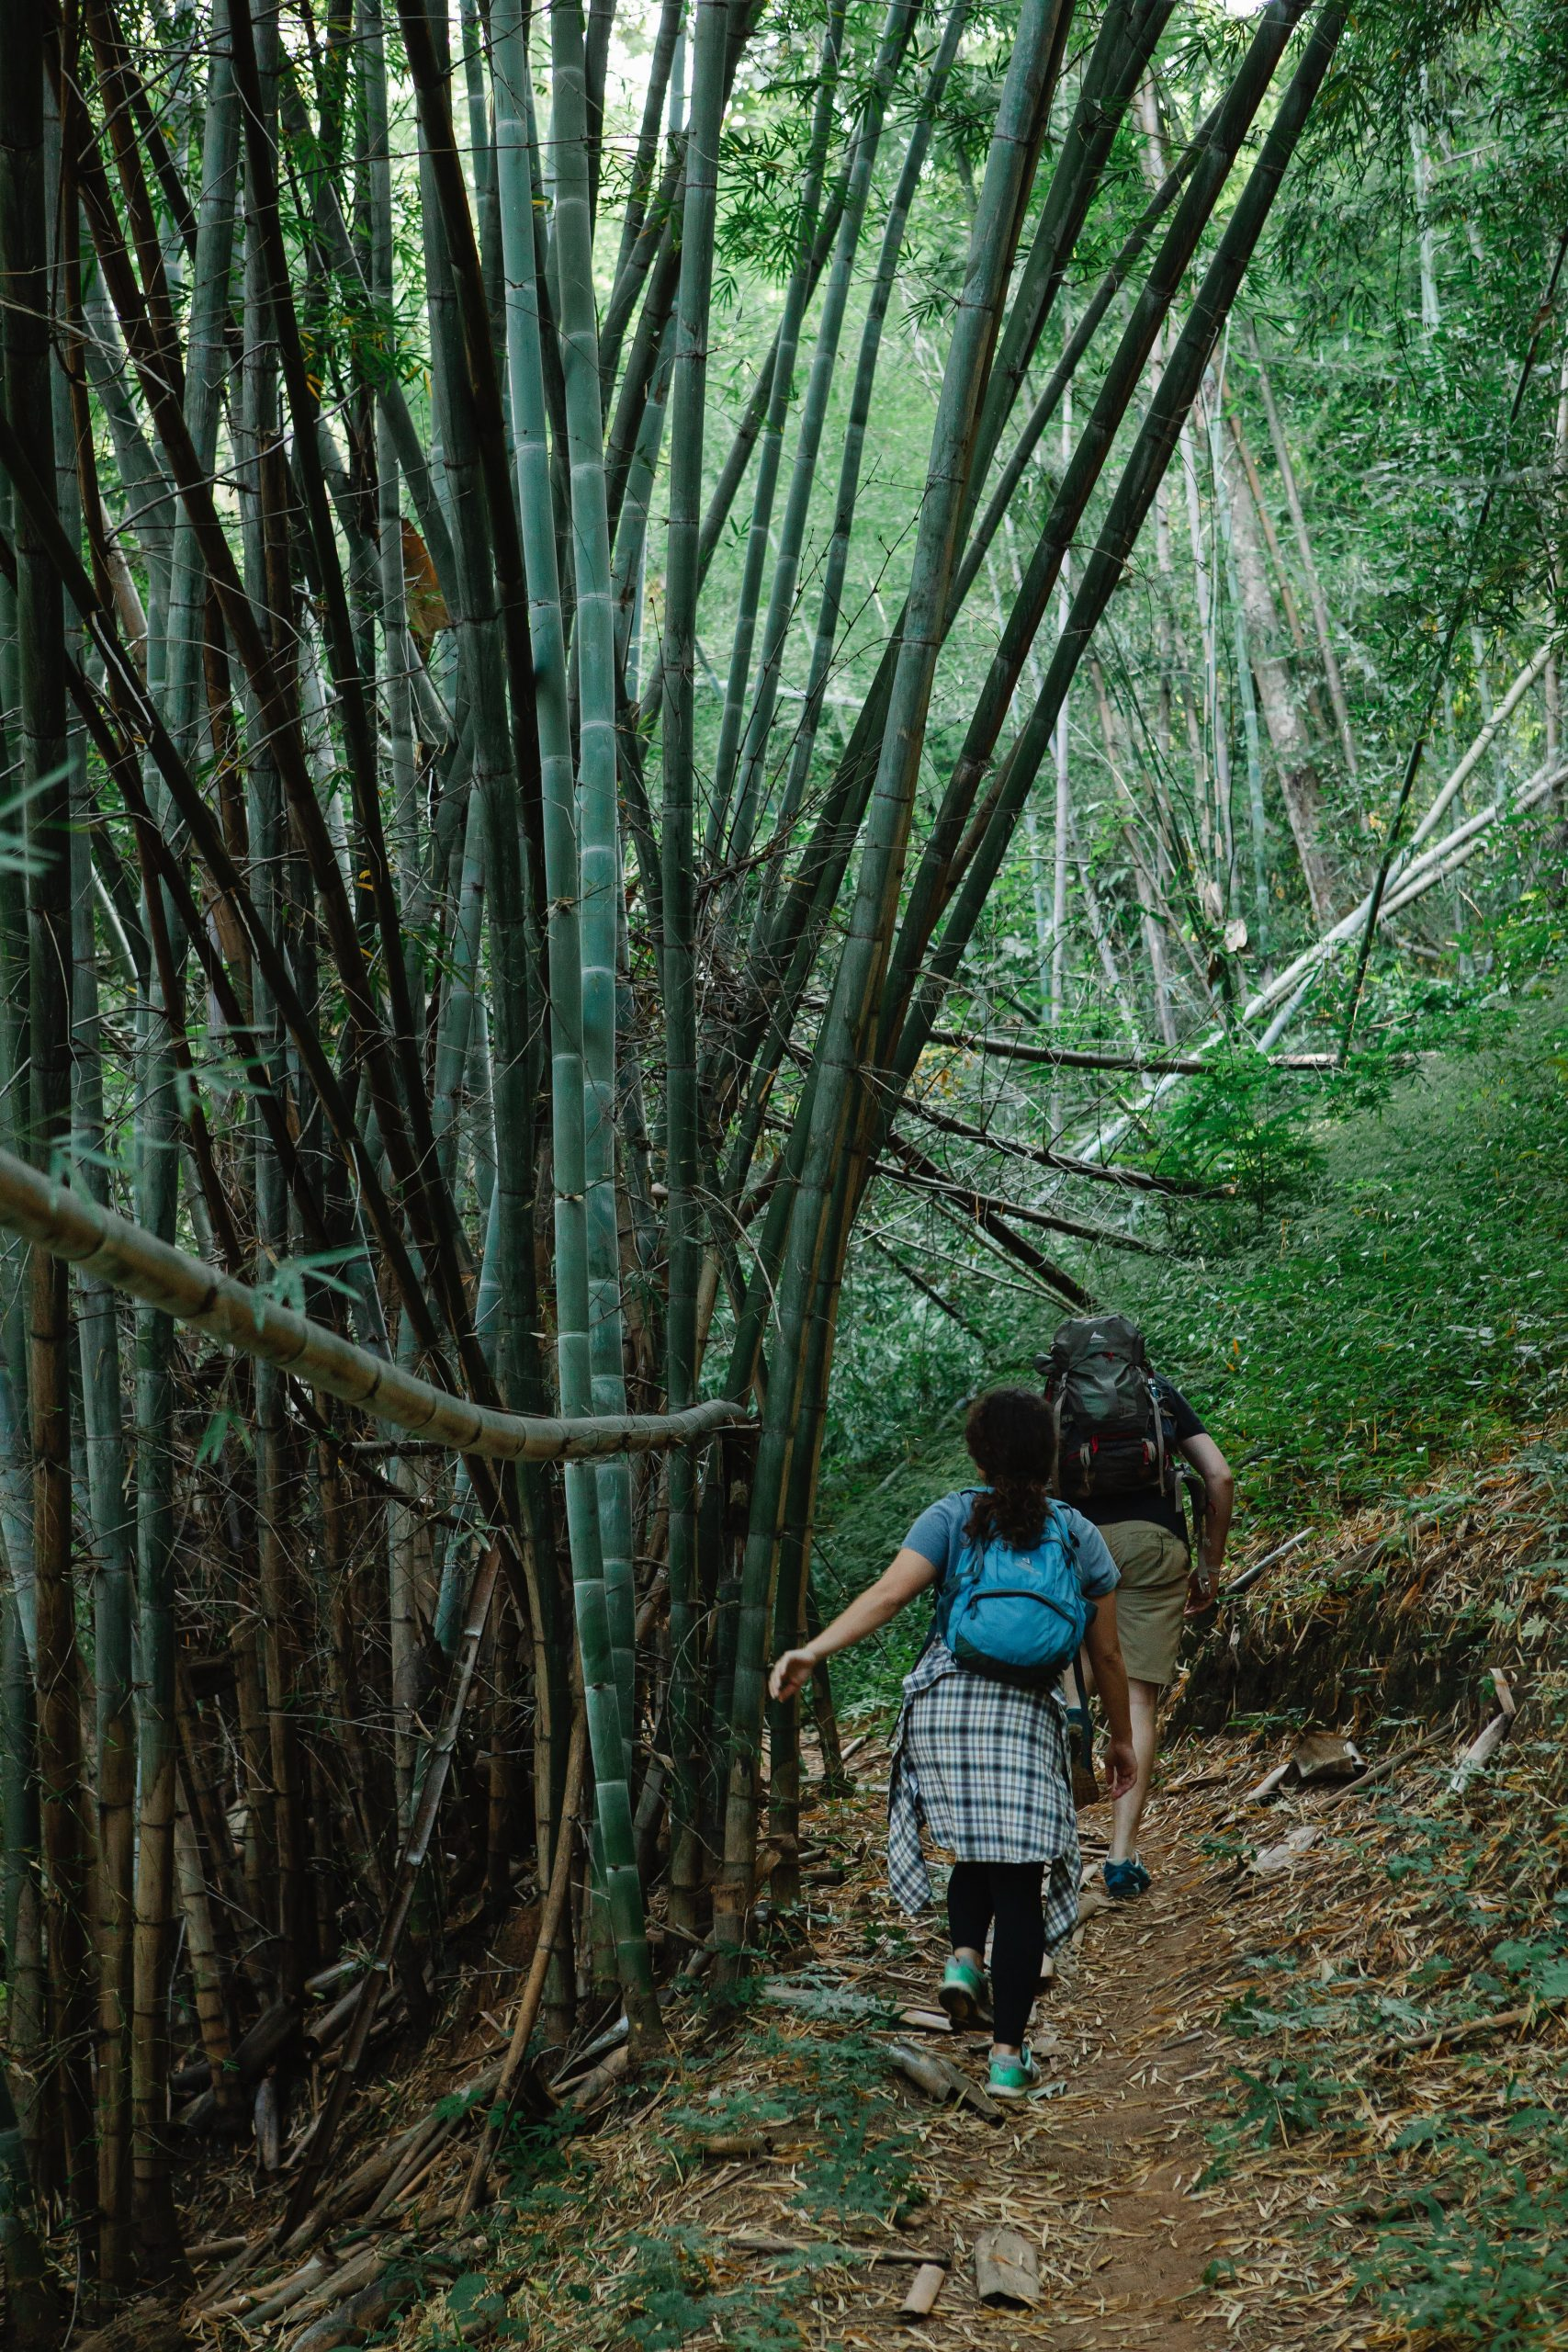 Anonymous travelers strolling on narrow alley among bamboo trees